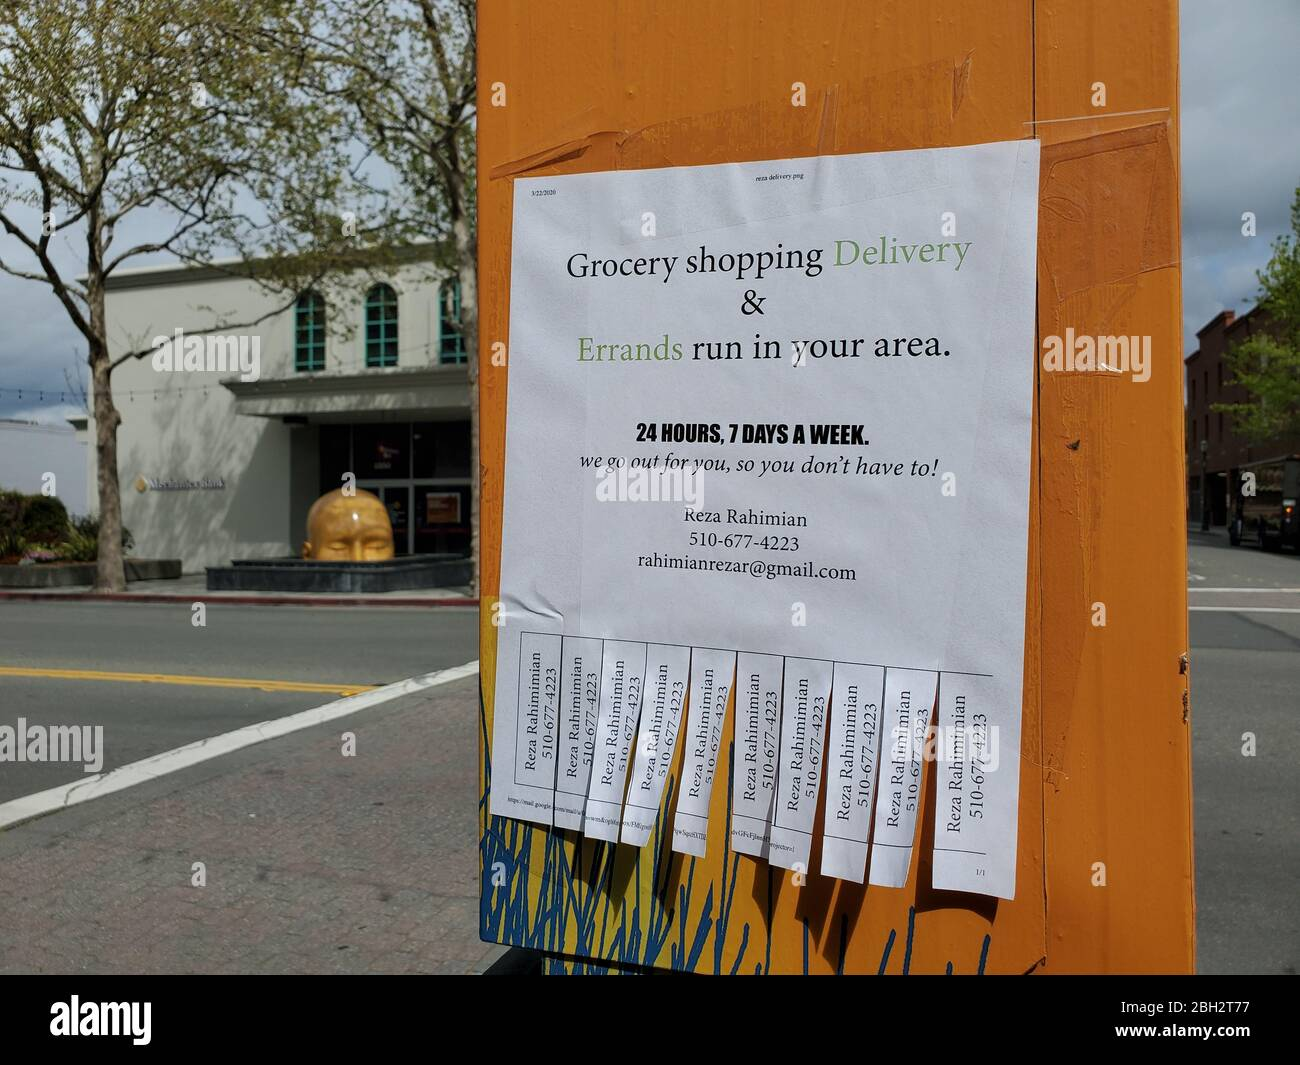 A sign with pulltabs provides details on a grocery shopping service during an outbreak of COVID-19 coronavirus in Walnut Creek, California, March 24, 2020. () Stock Photo